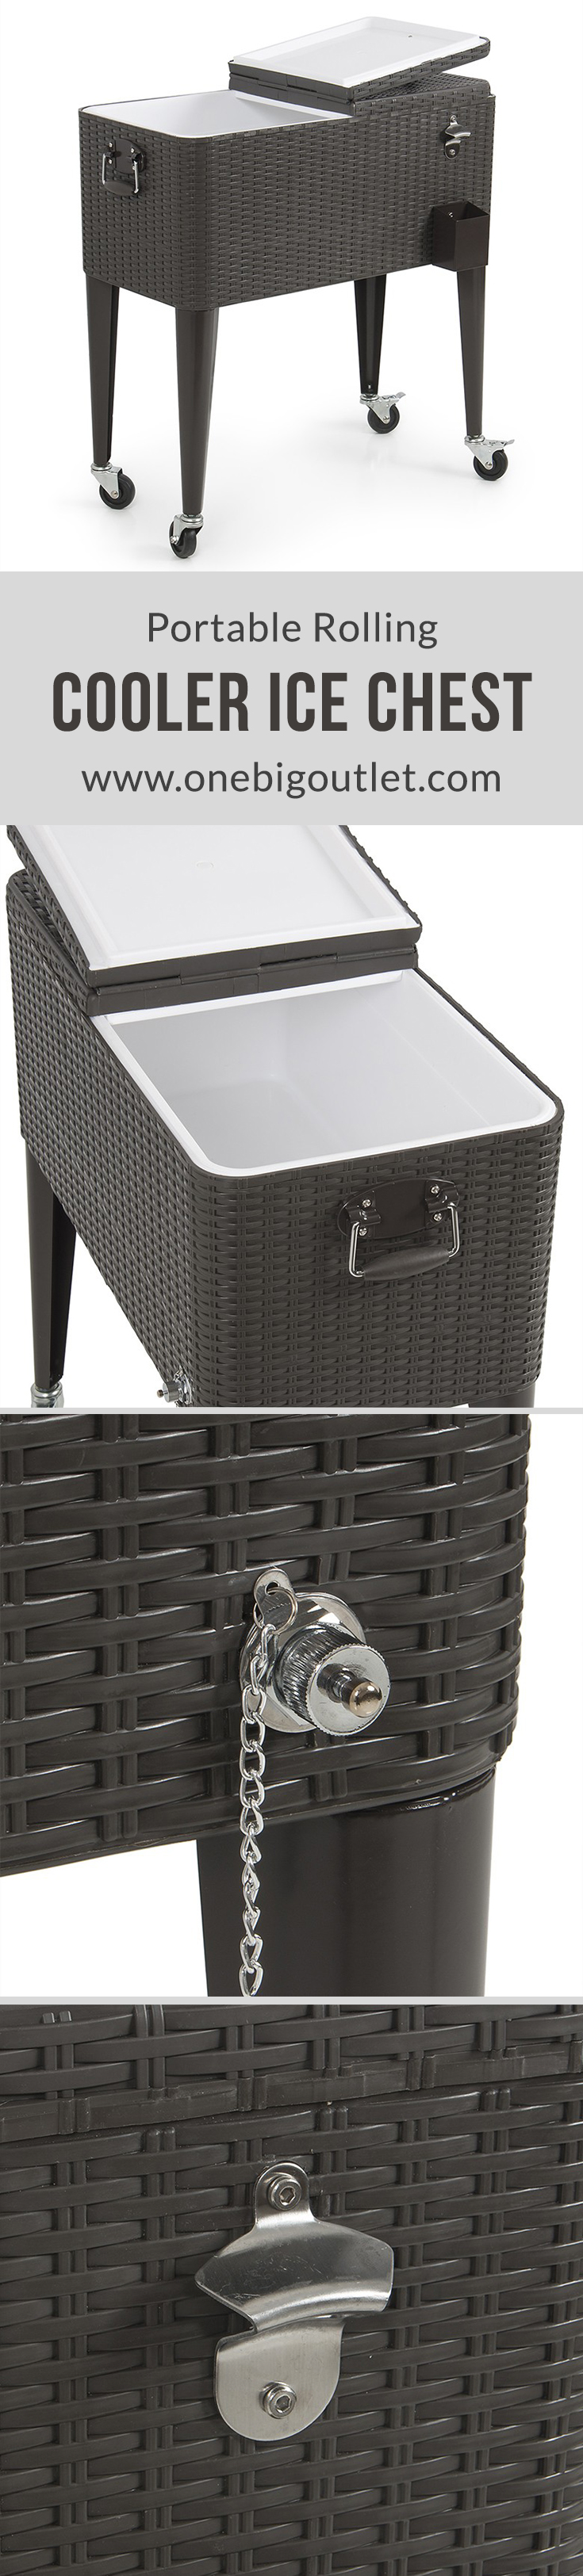 portable rolling cooler ice chest cool soda beverage party rattan